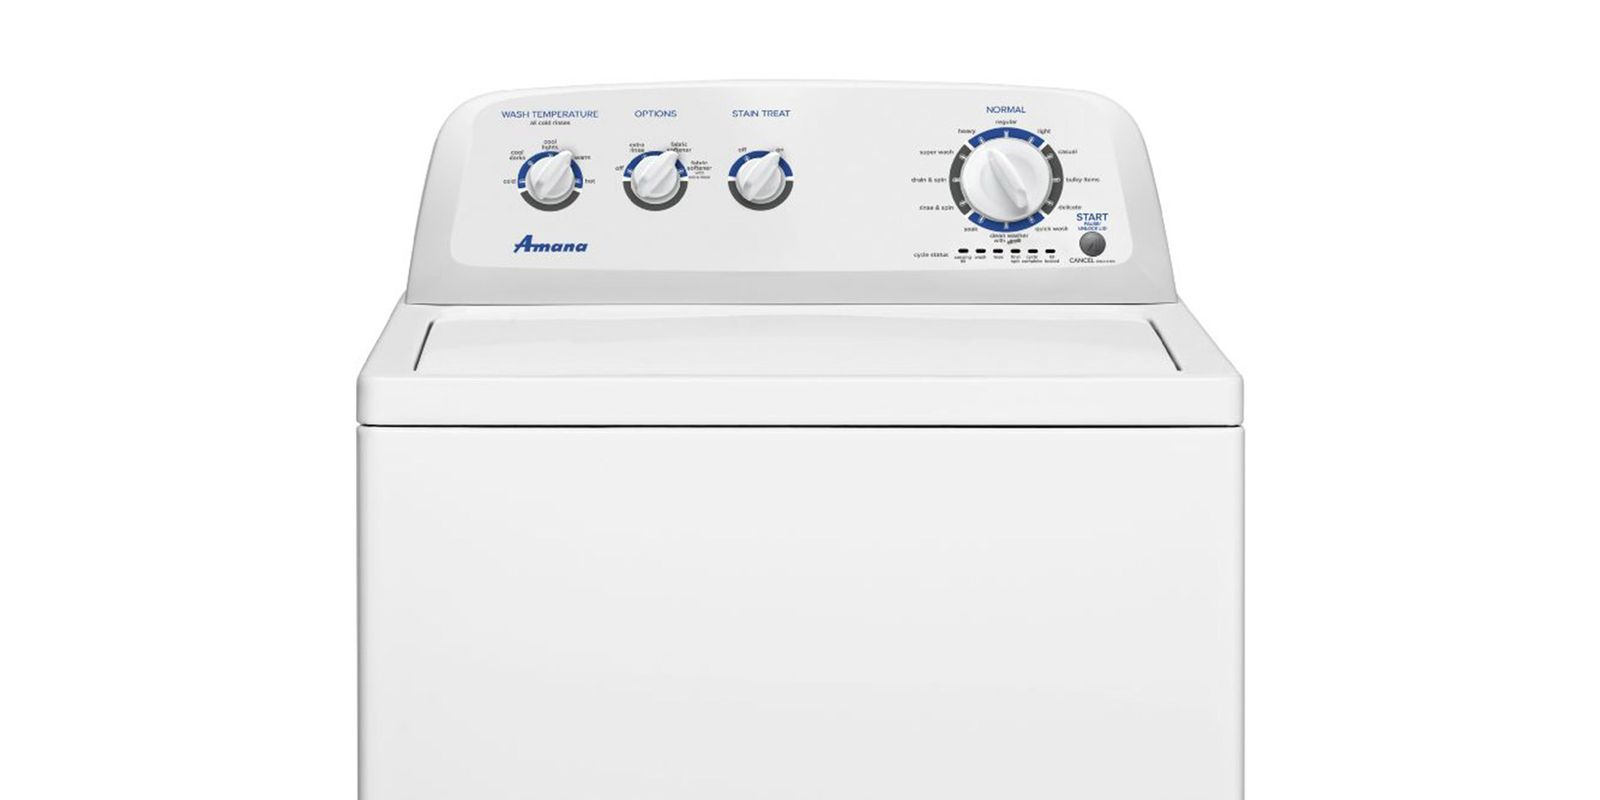 The best top load washer on the market - May 2014 Washers